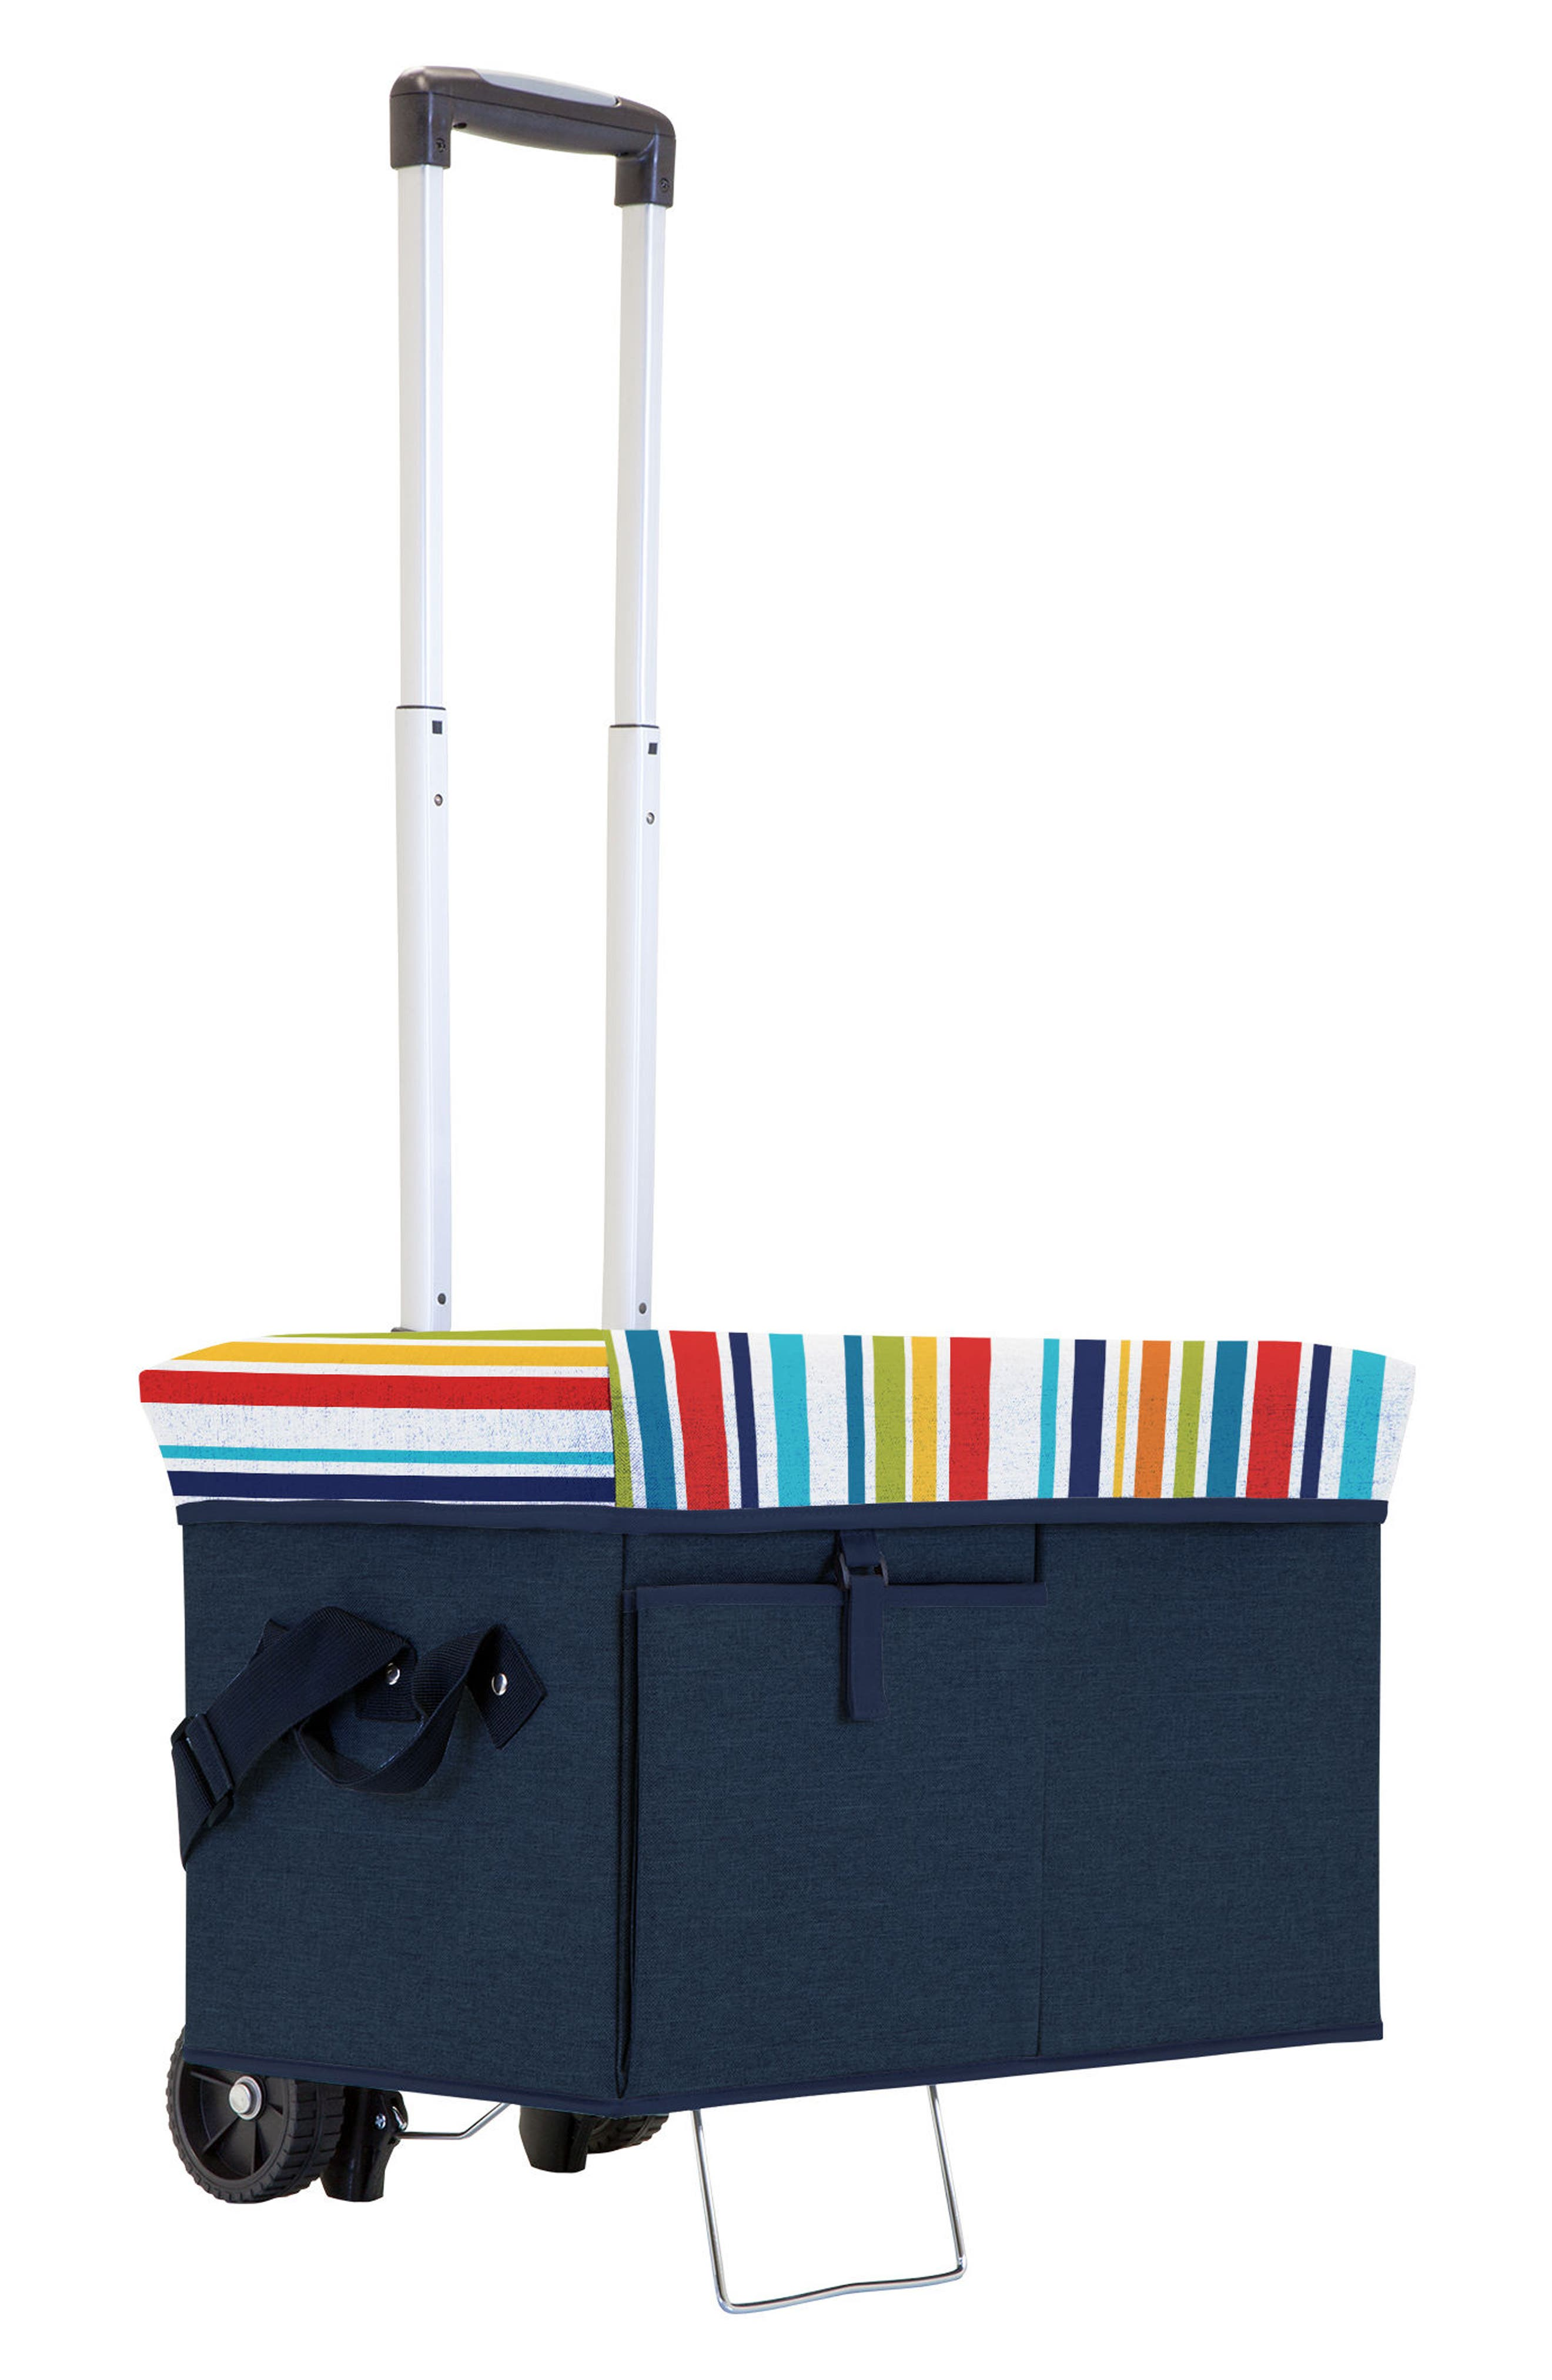 Main Image - Picnic Time Ottoman Cooler with Trolley